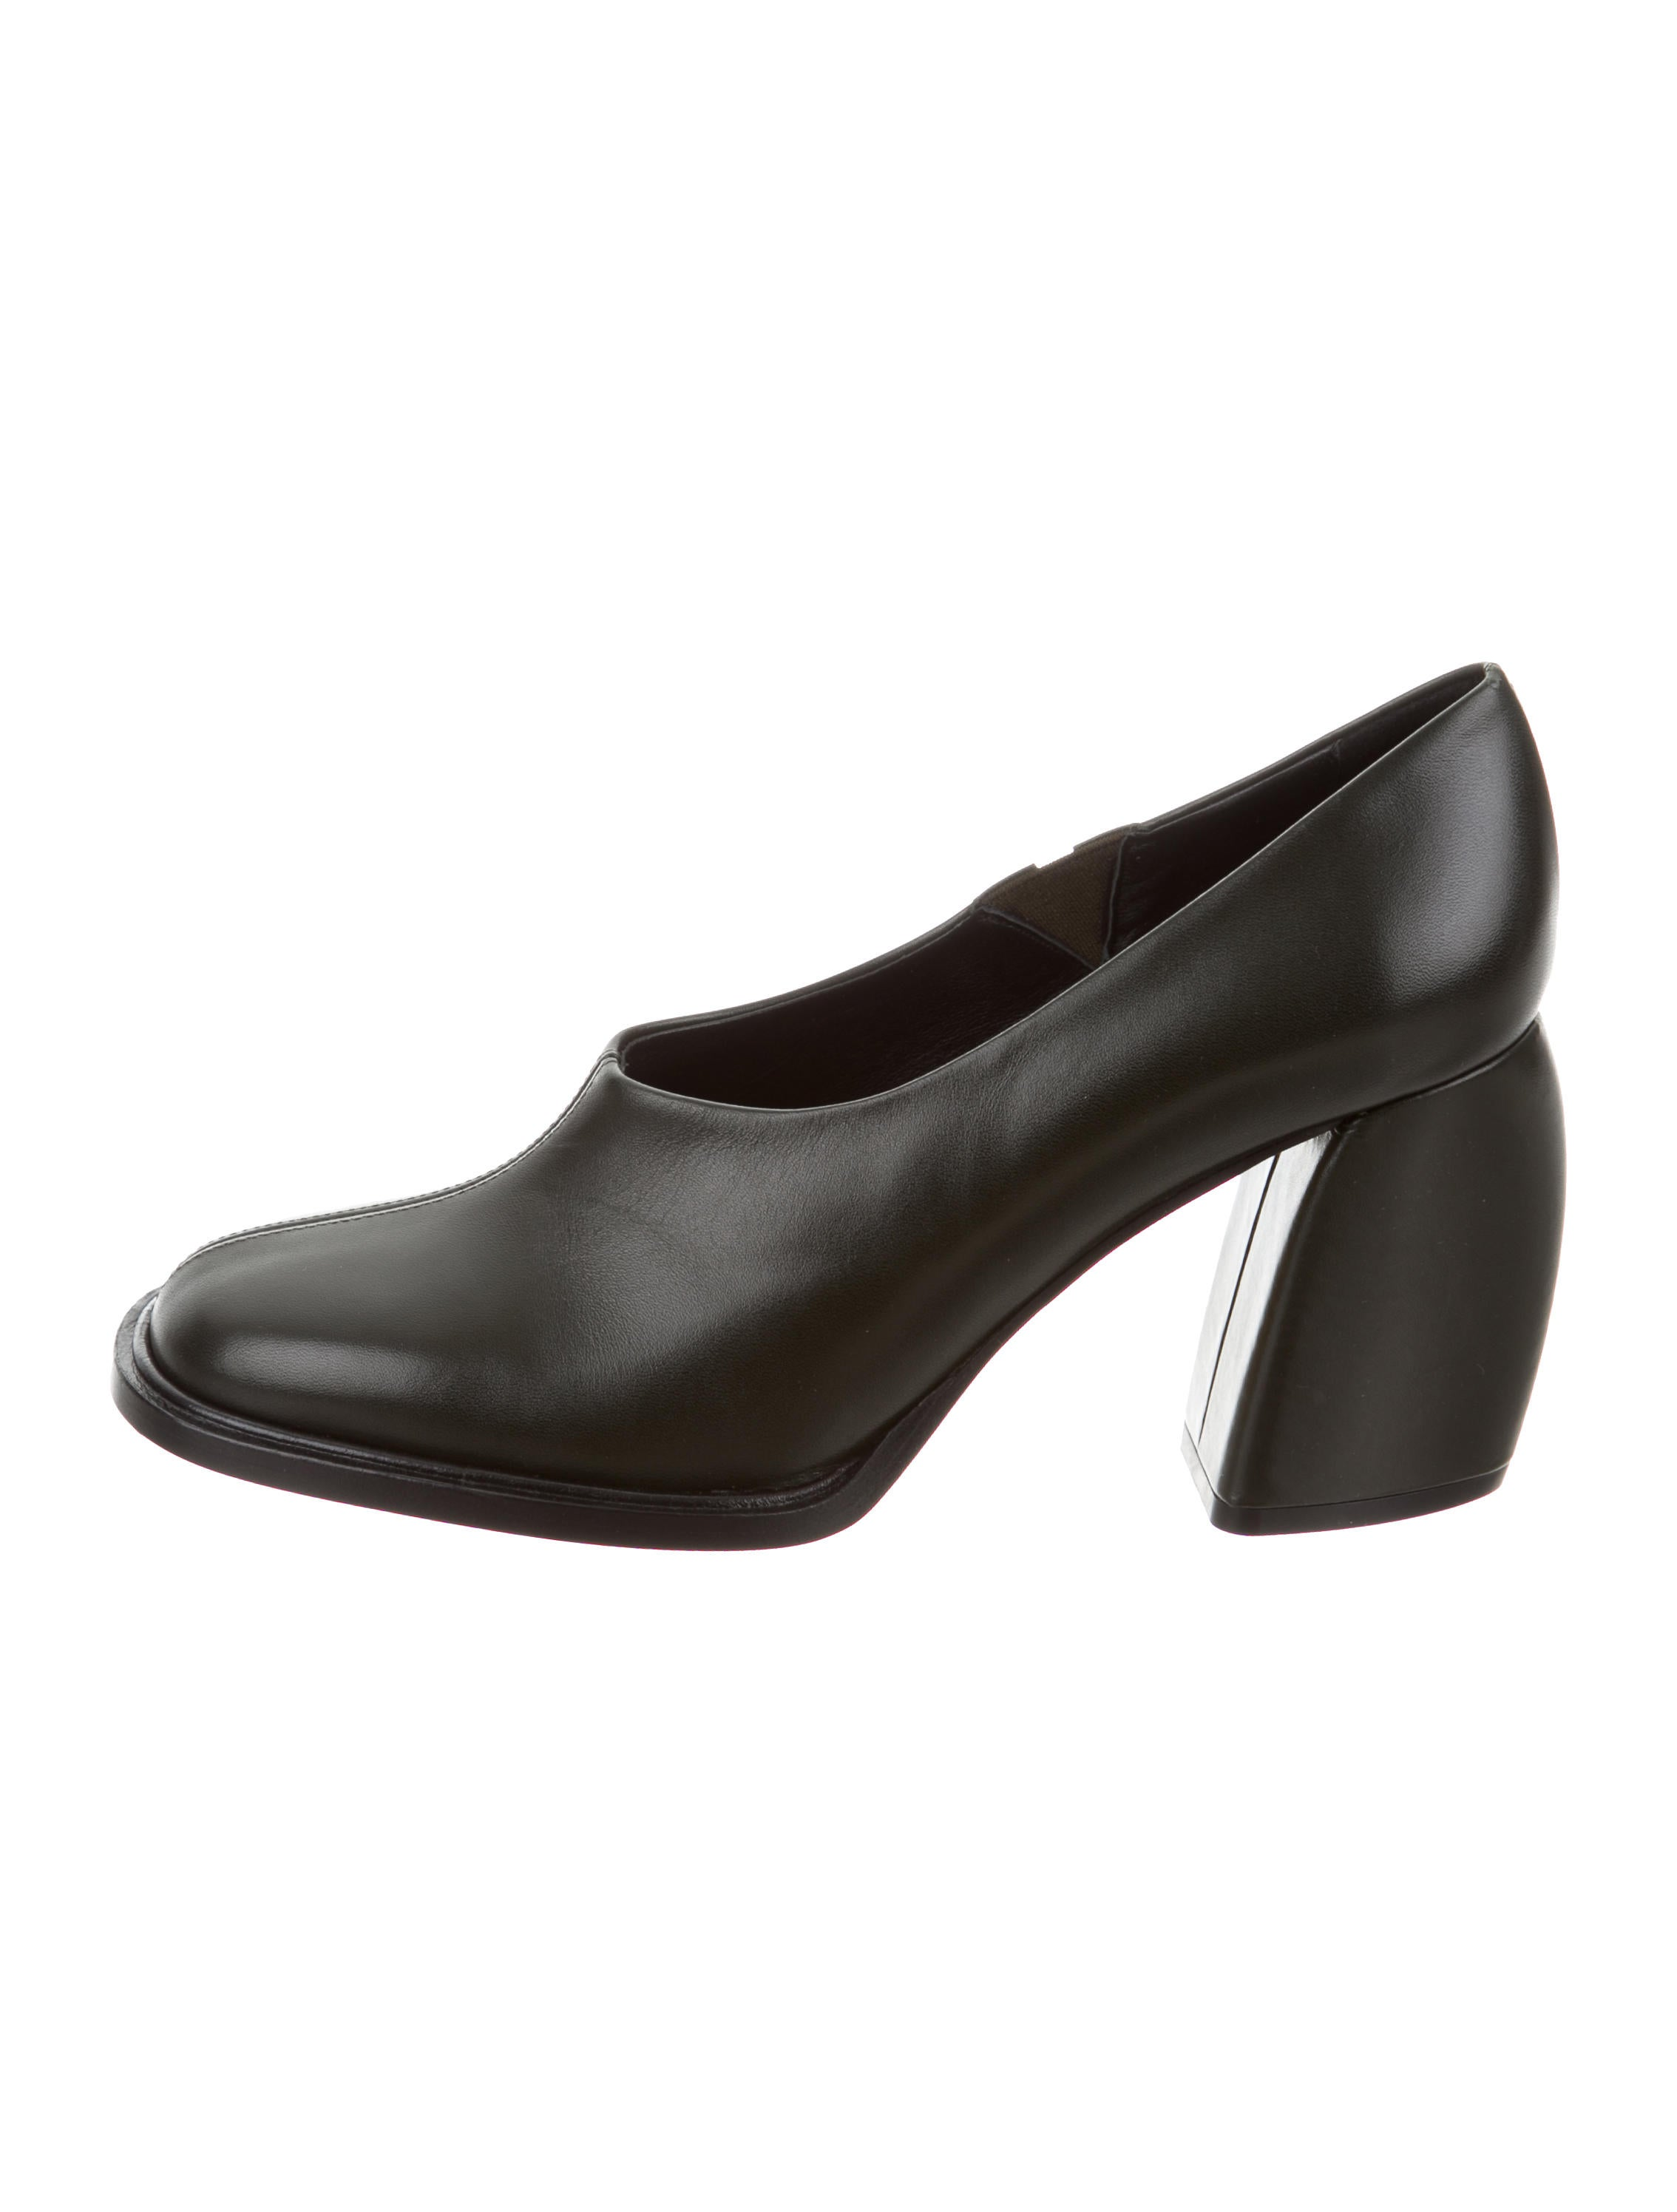 Tibi Square-Toe Leather Pumps best prices online outlet free shipping authentic enjoy cheap online clearance geniue stockist ayx1yMm6v